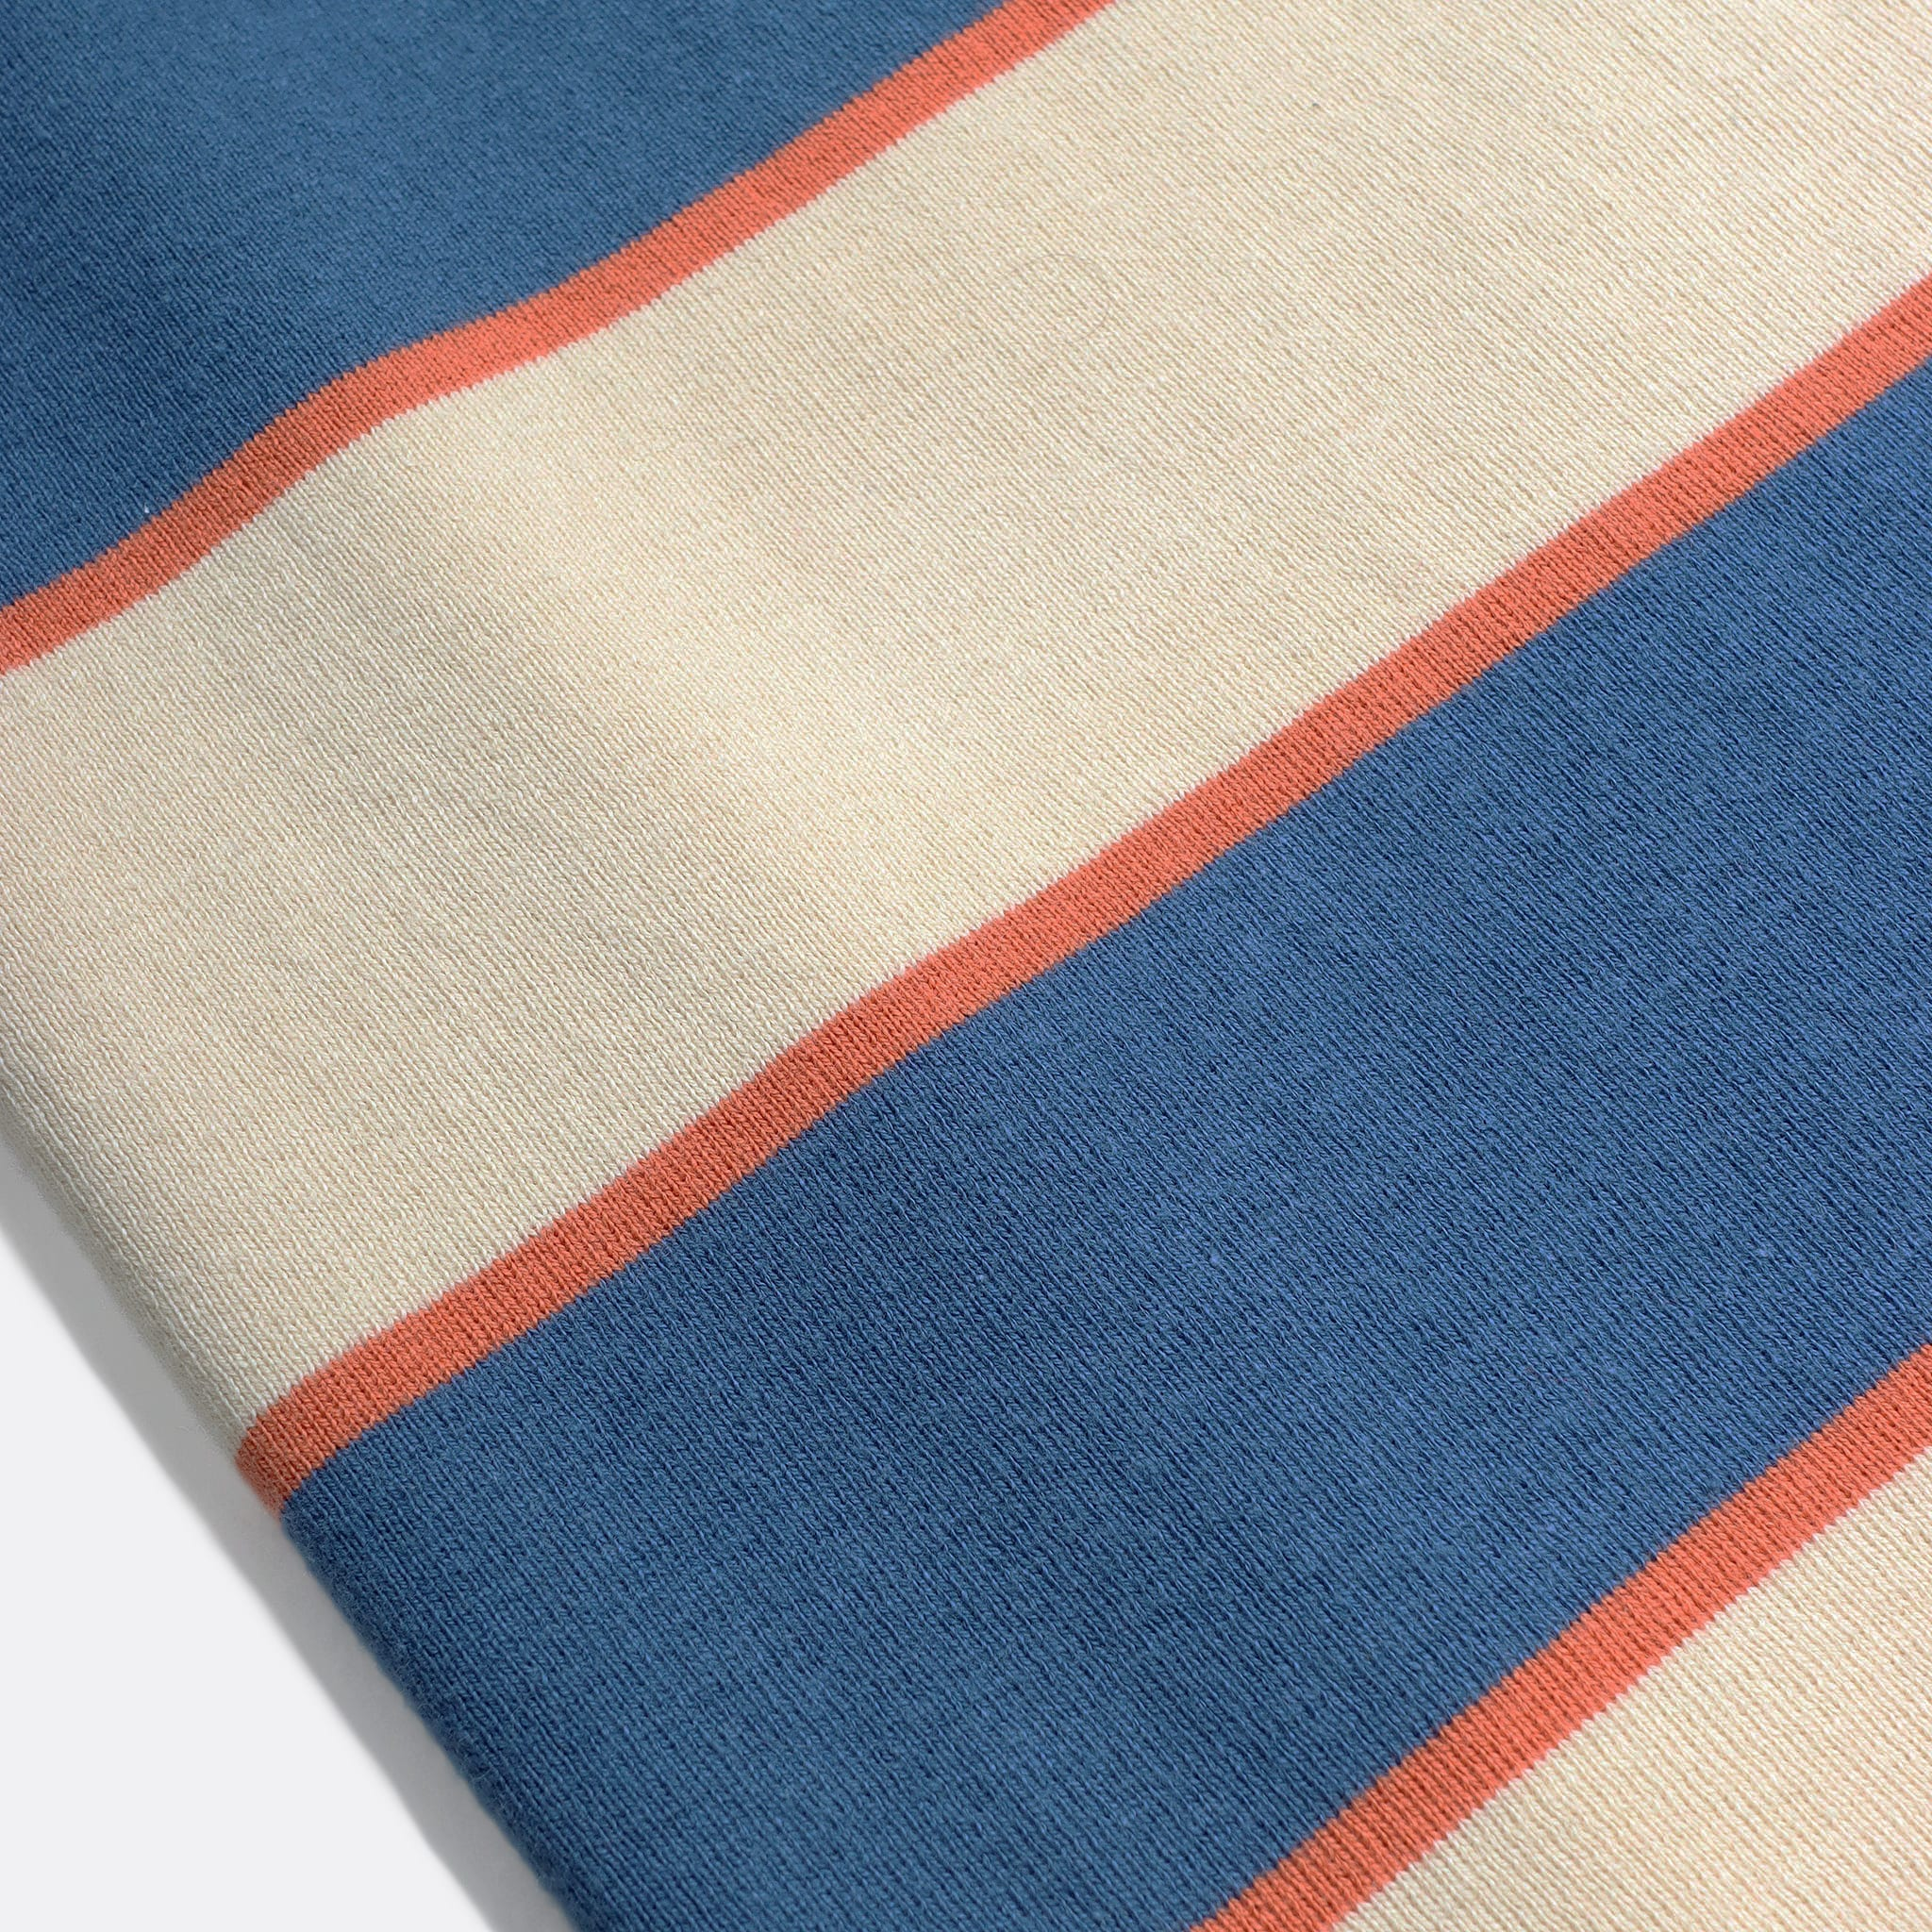 Far Afield Newport T-Shirt a Ensign Blue/Lambs White Organic Cotton Fabric Short Sleeve Mid Century Inspired 5